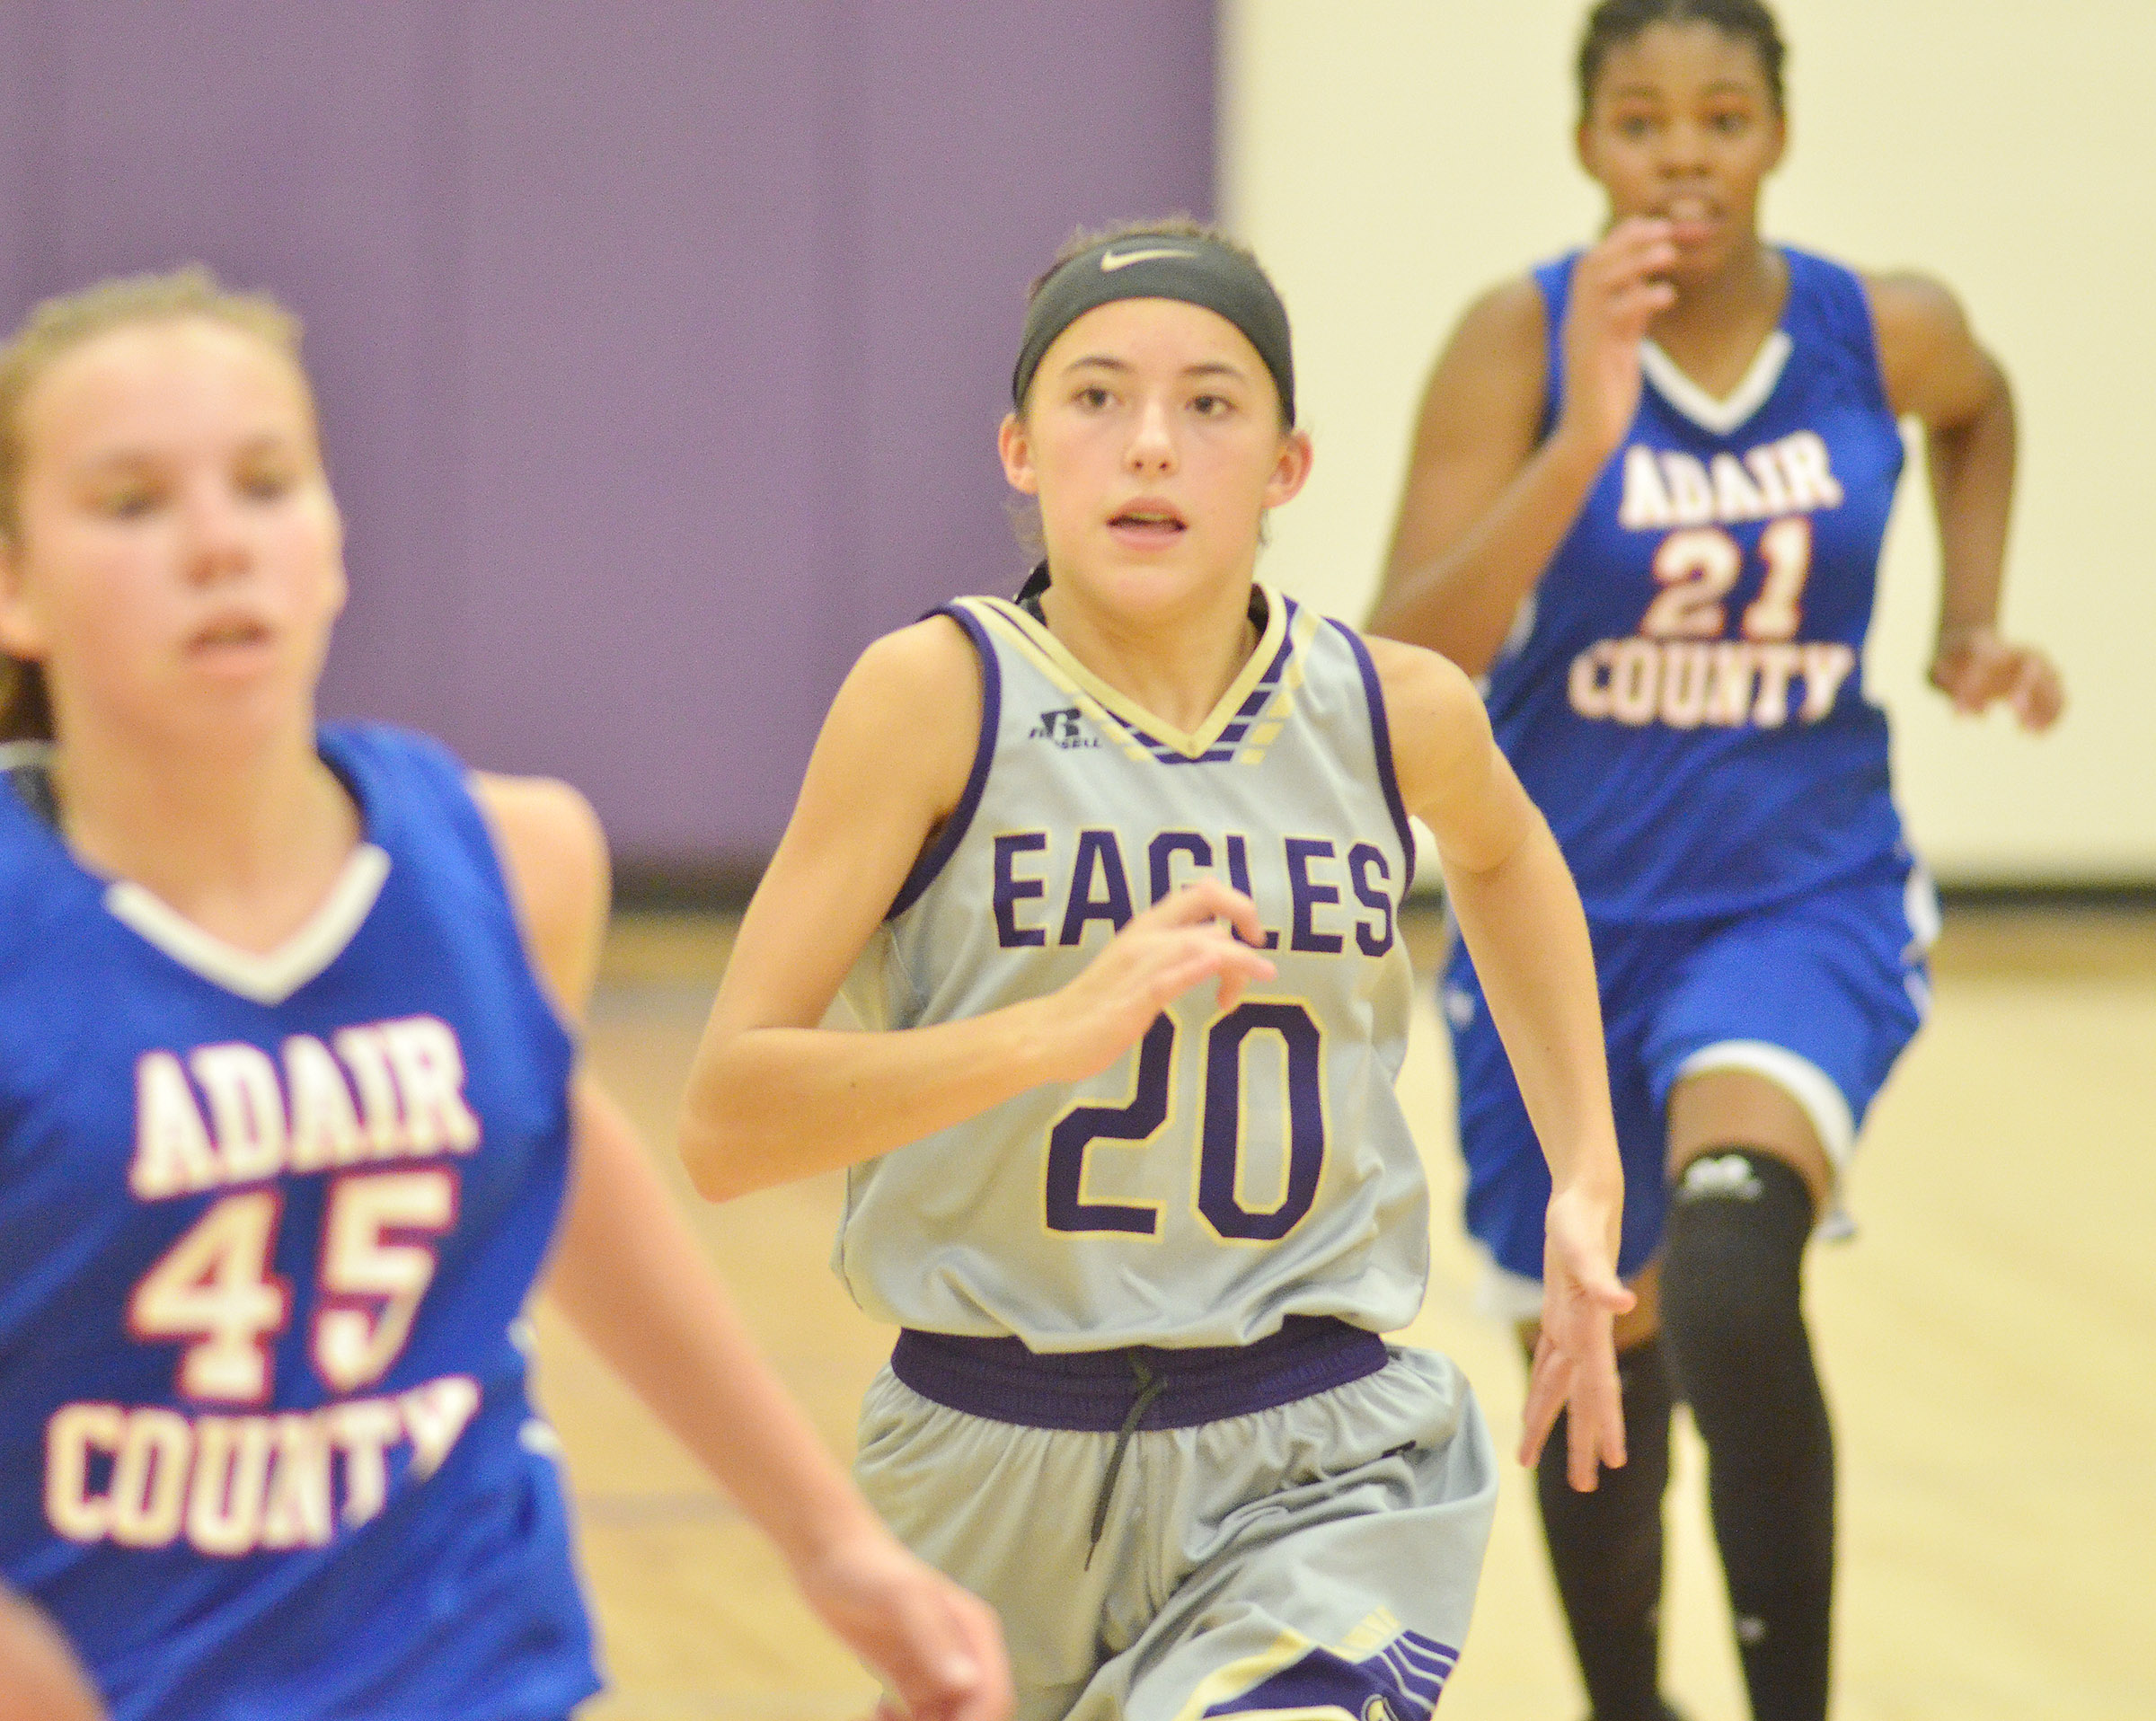 CMS eighth-grader Kaylyn Smith runs to the basket.